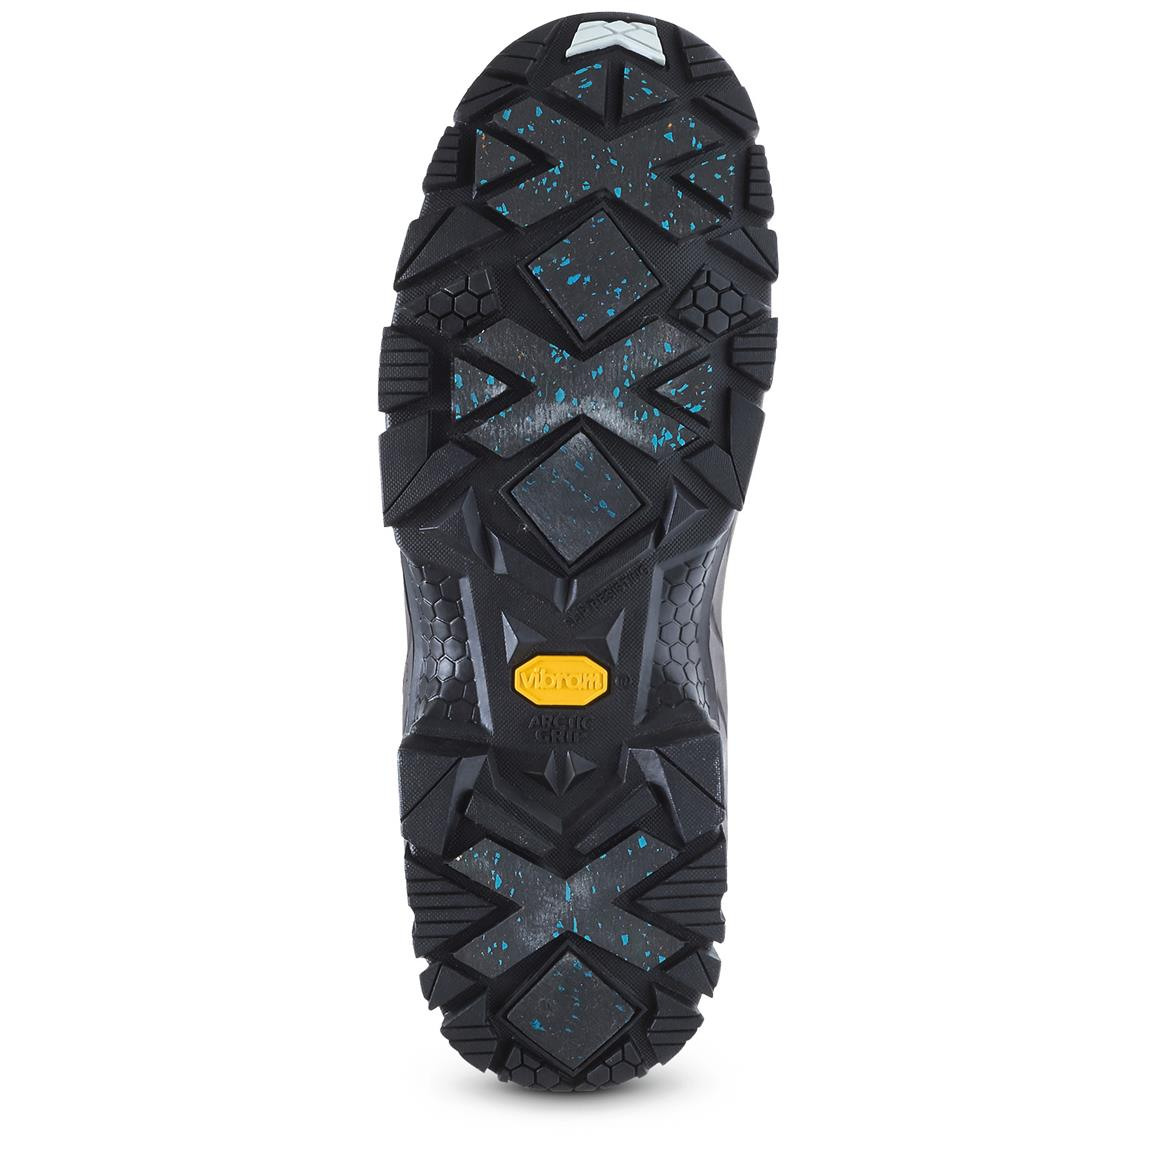 Vibram Arctic Grip outsole for traction on wet ice